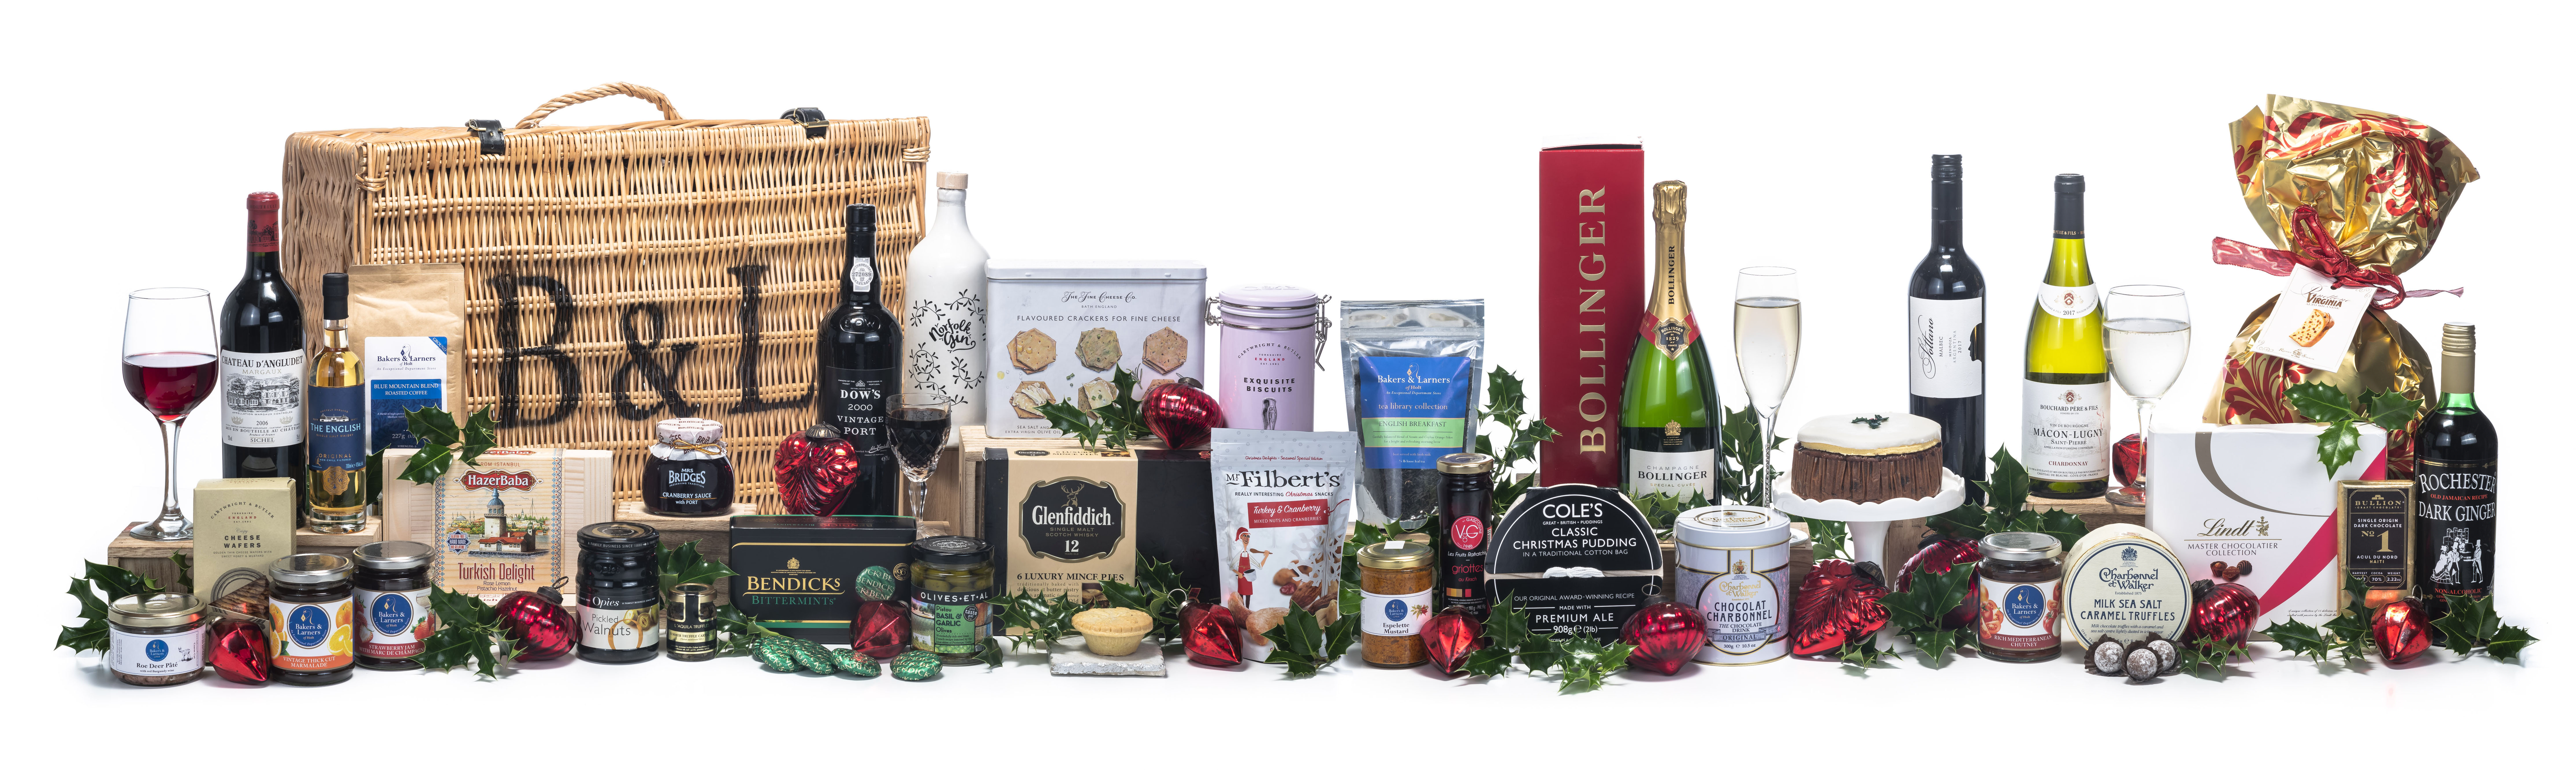 The Regal Christmas Hamper from Bakers and Larners